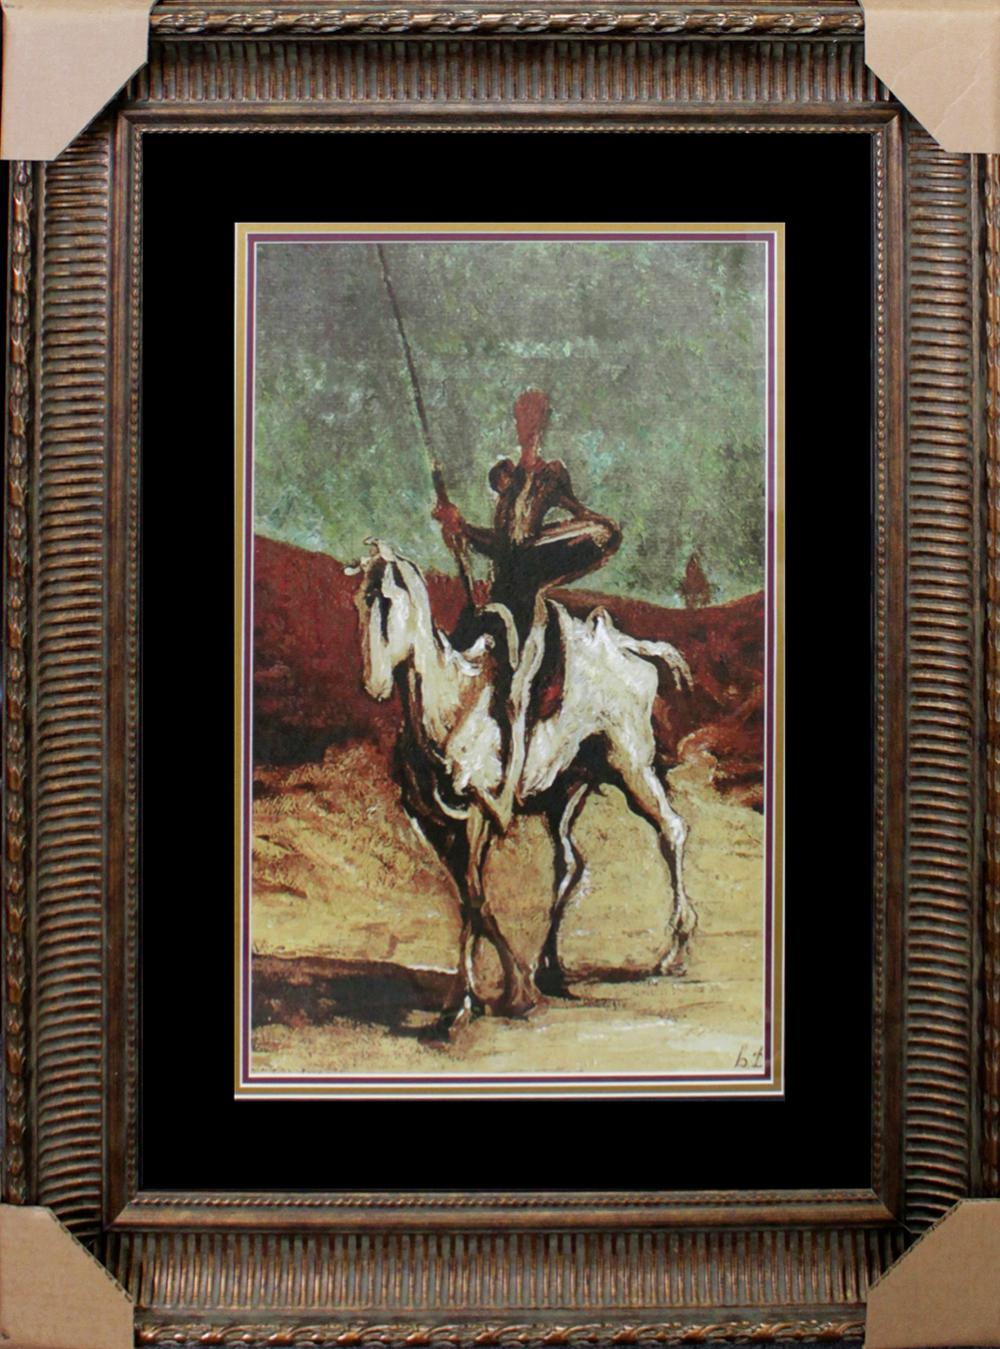 Lot 3302: Honore Daumier - Horseman embellished canvas